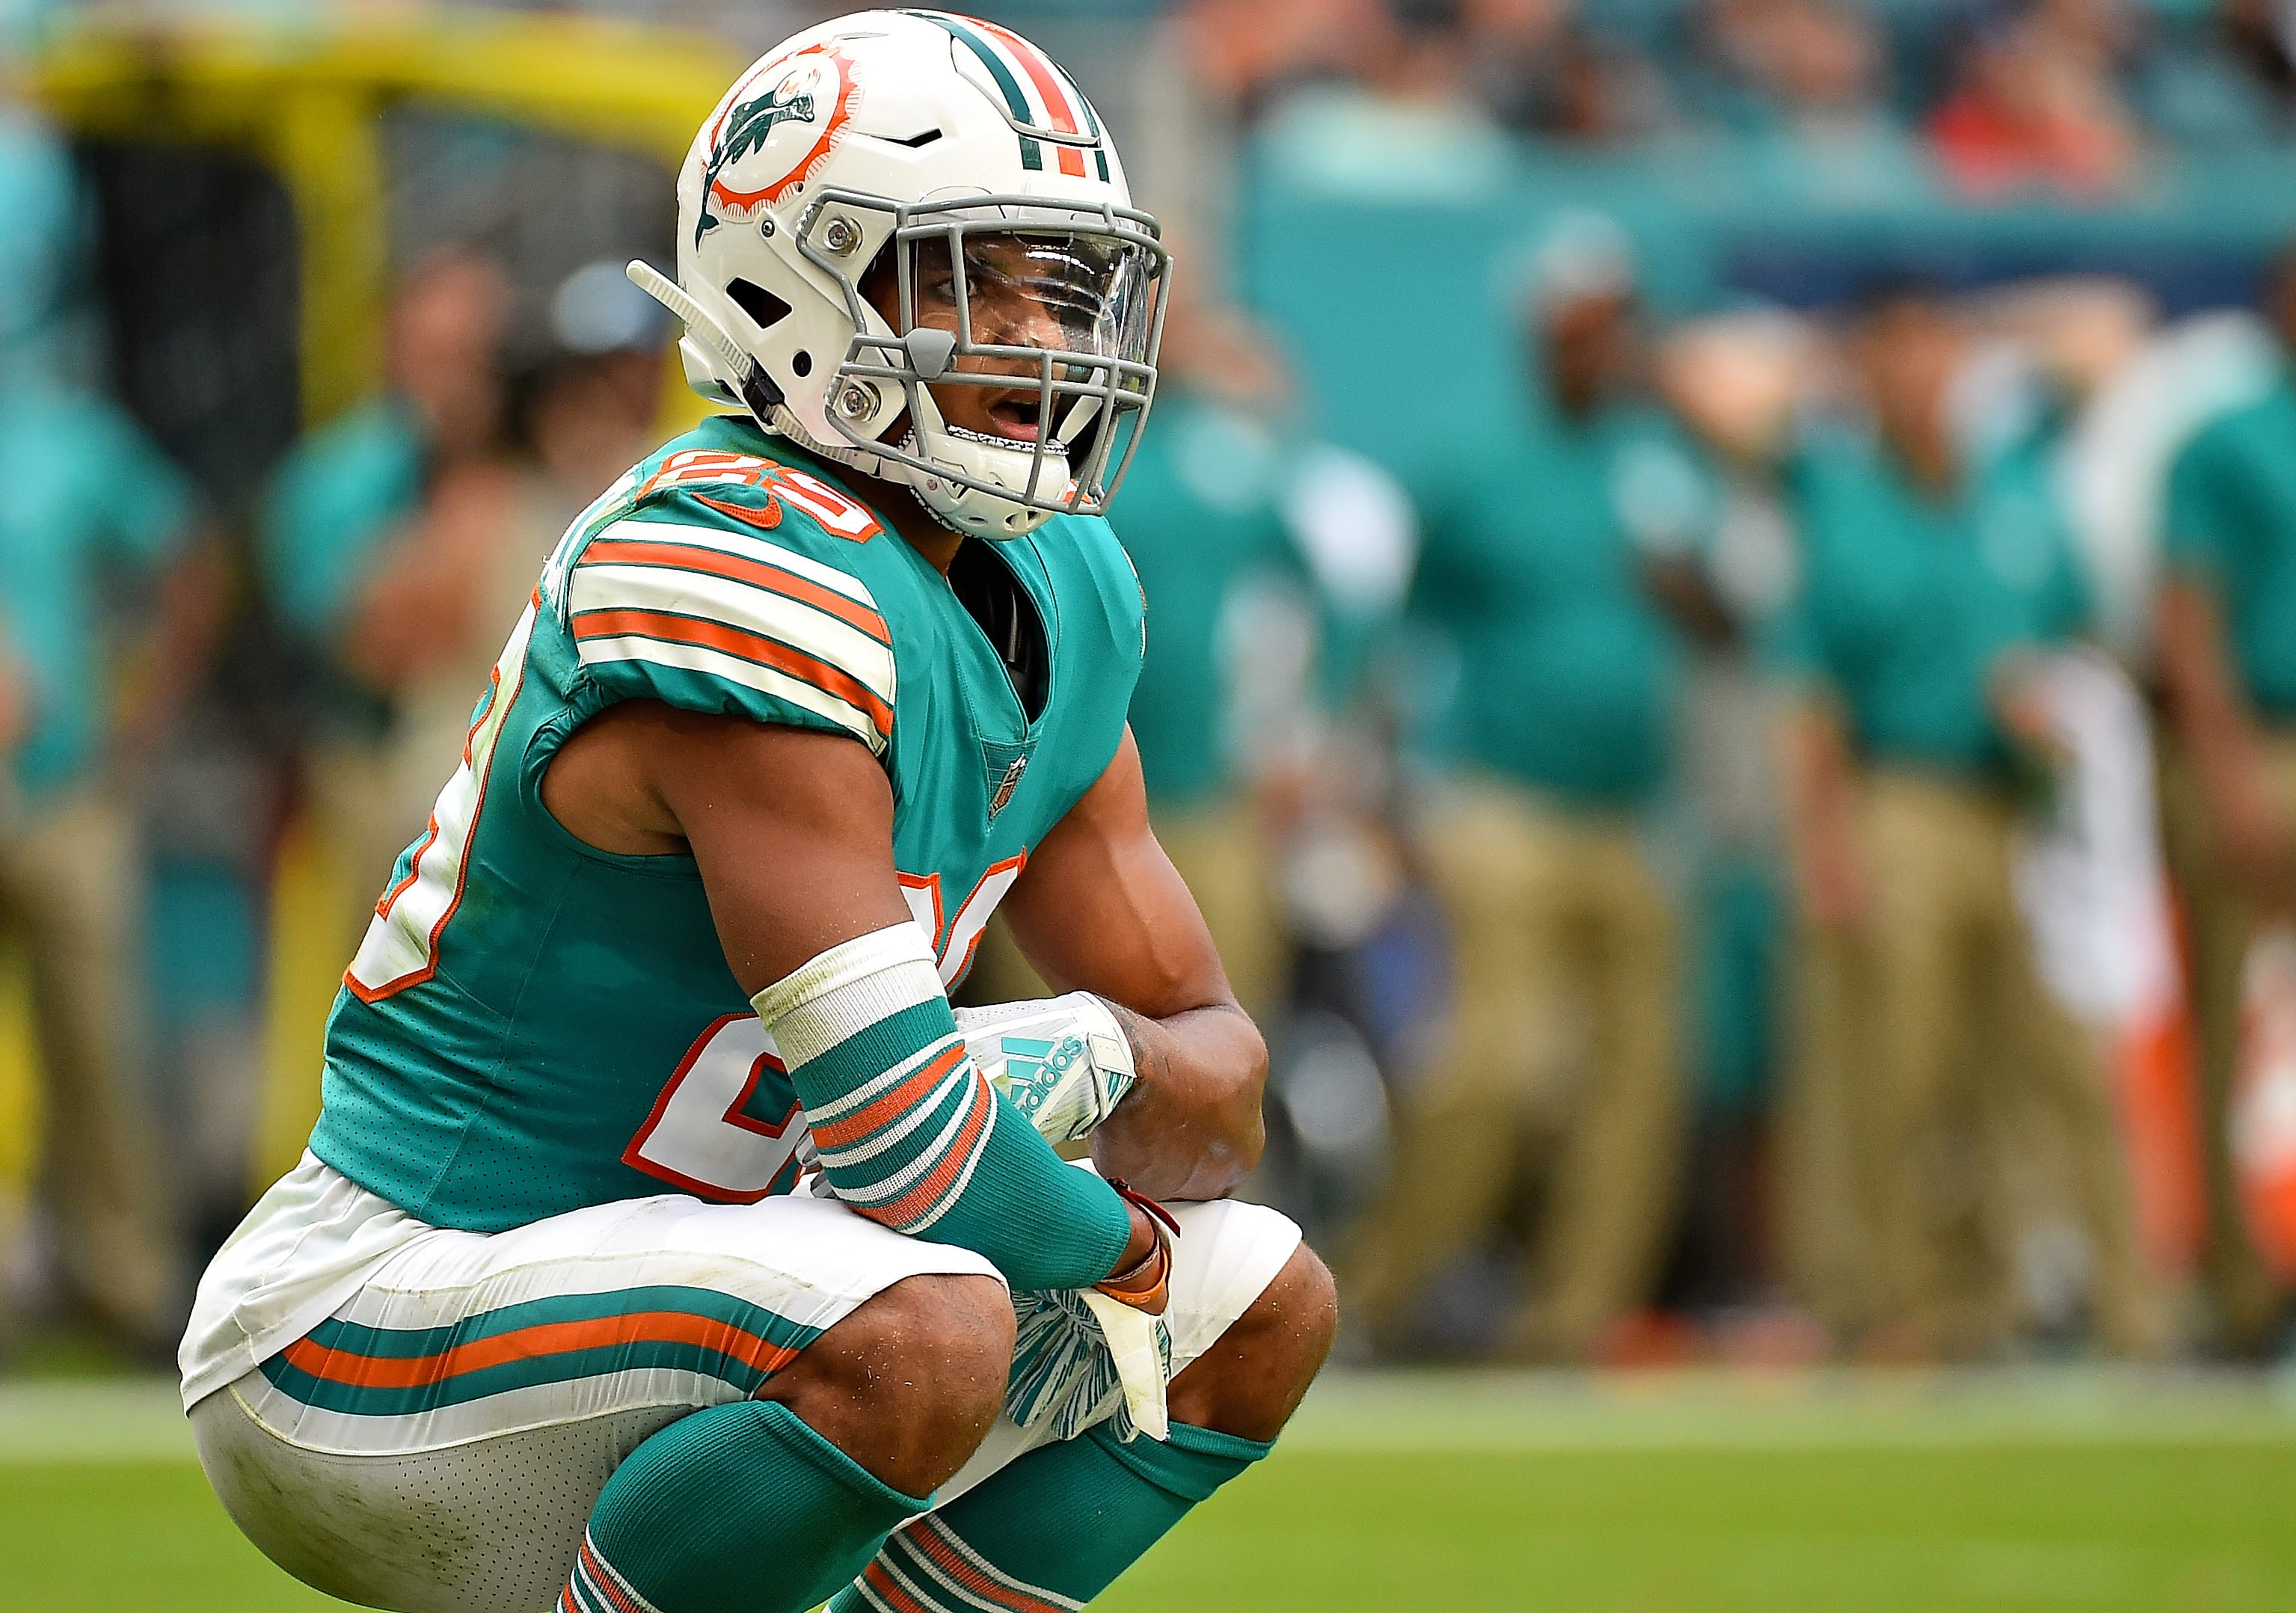 New York Giants should consider Miami Dolphins defender, Minkah Fitzpatrick.